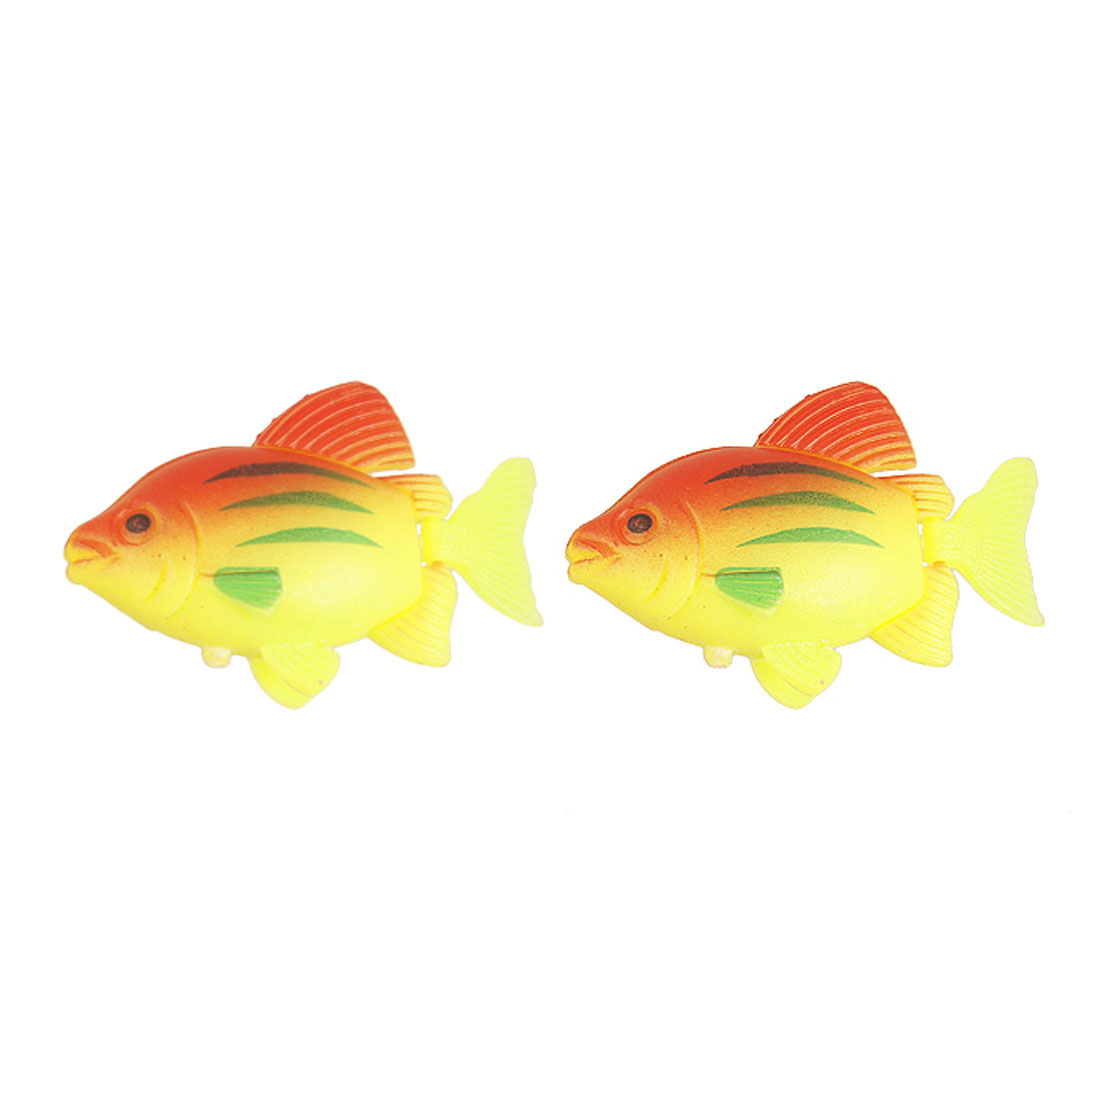 Water Floating Plastic Vividly Life-like Simulation Fish 2 Pcs